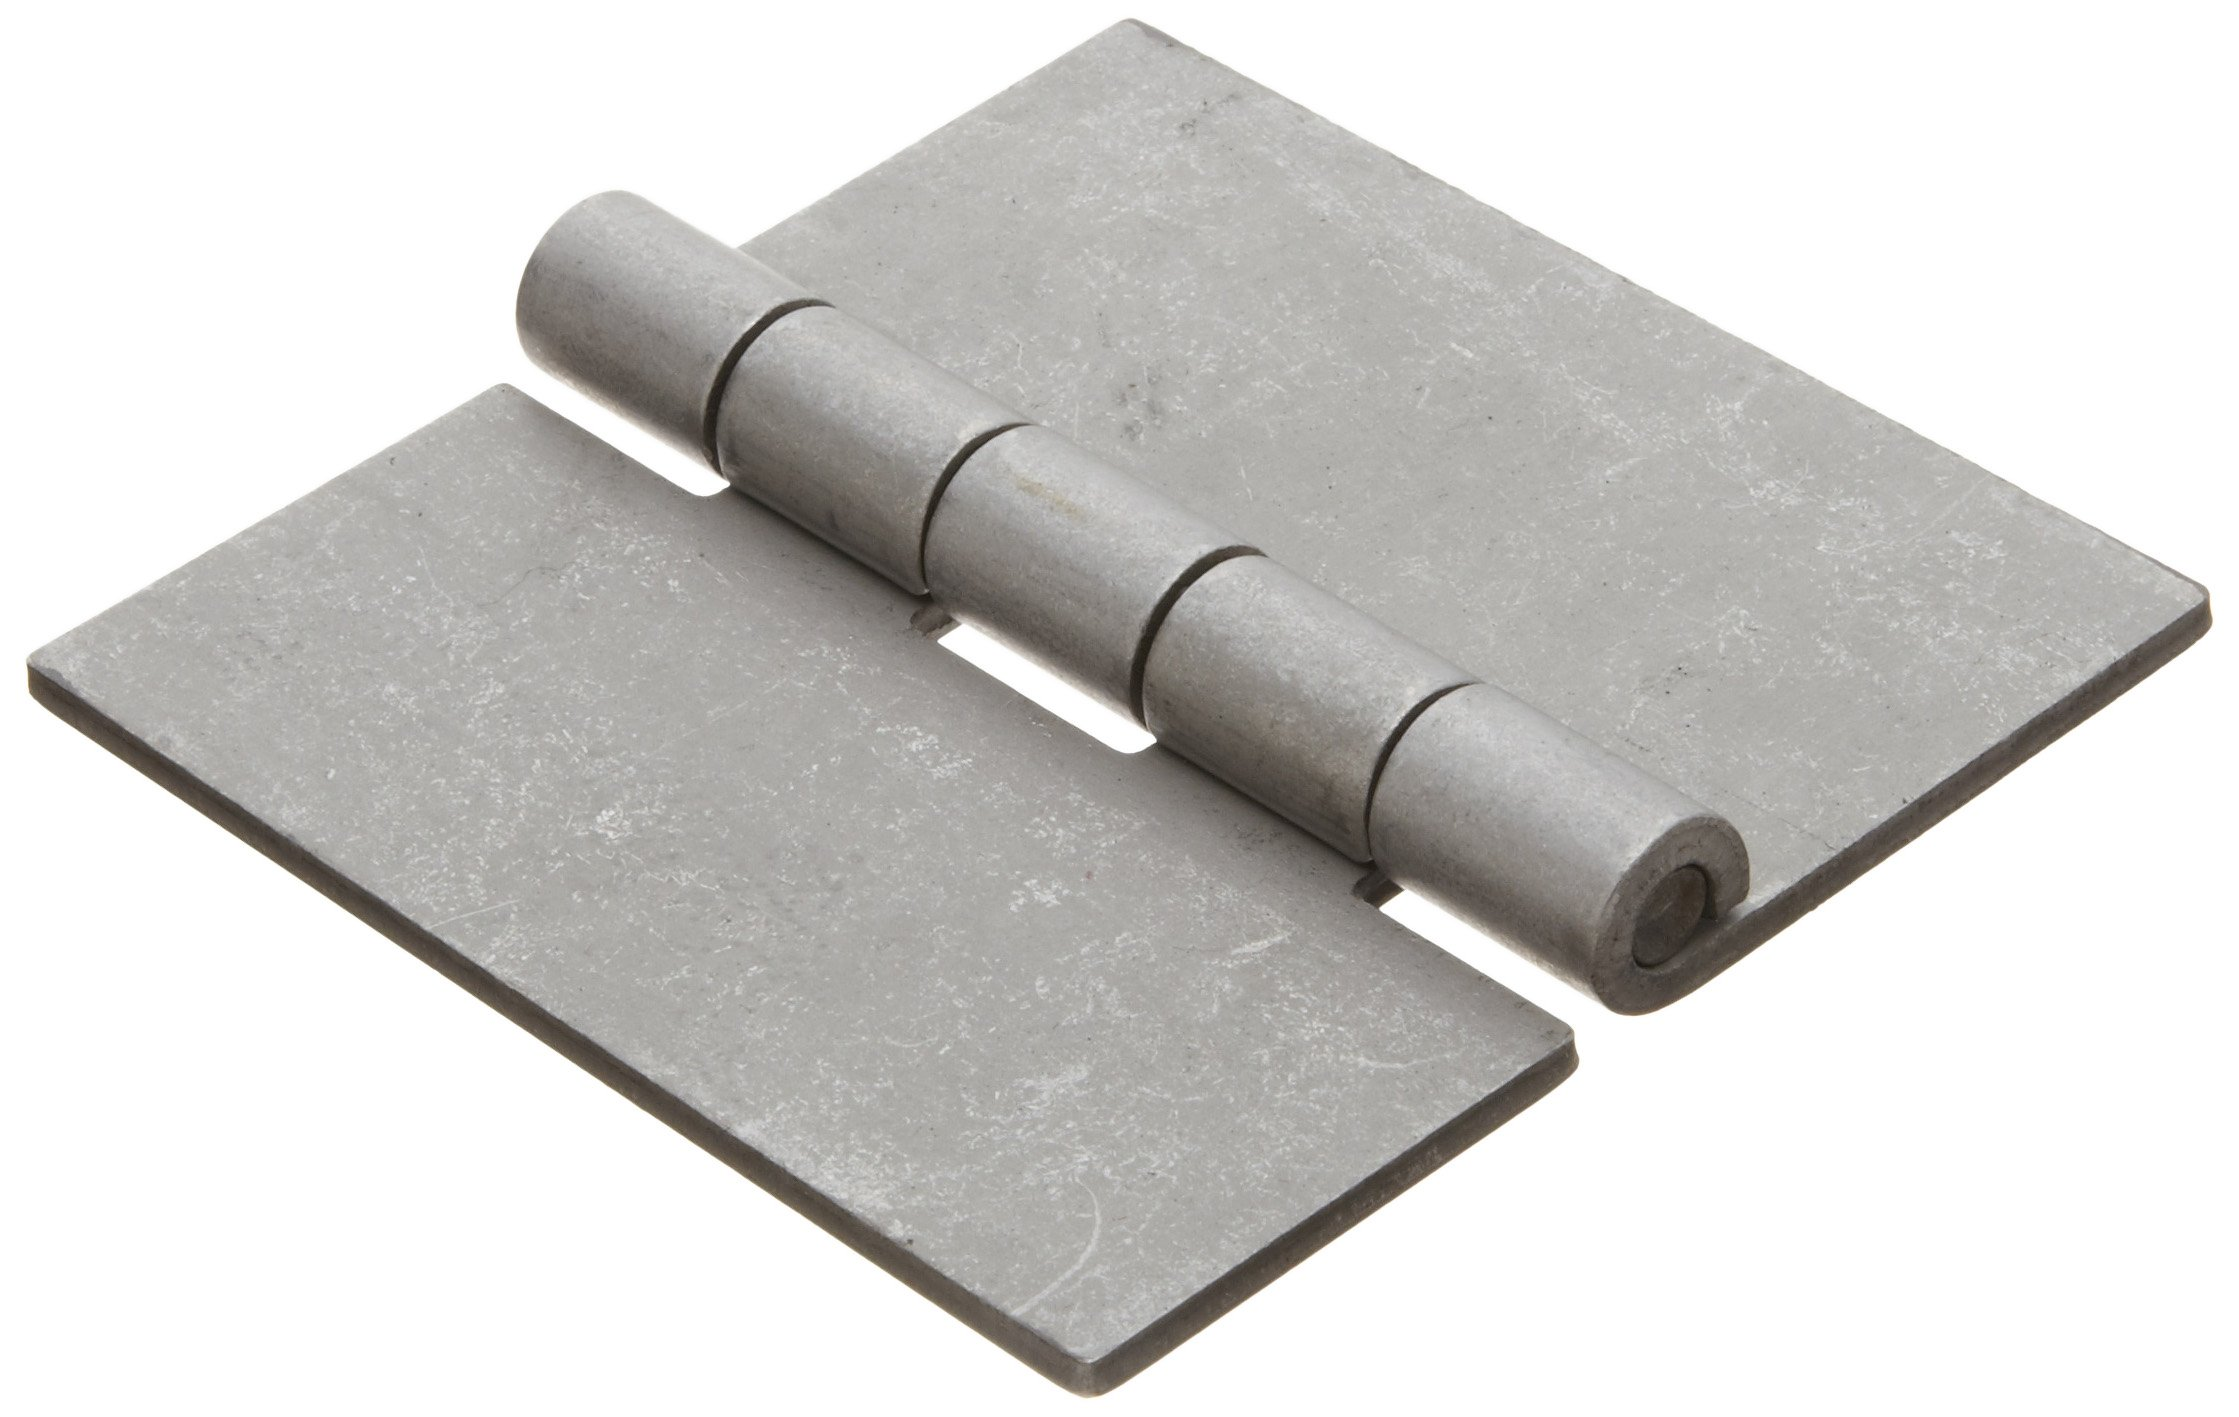 Steel Surface Mount Butt Hinge without Hole, Unplated Finish, 0.130'' Leaf Thickness, 3-29/32'' Open Width, 17/64'' Pin Diameter, 4'' Long, Removable Pin (Pack of 1)